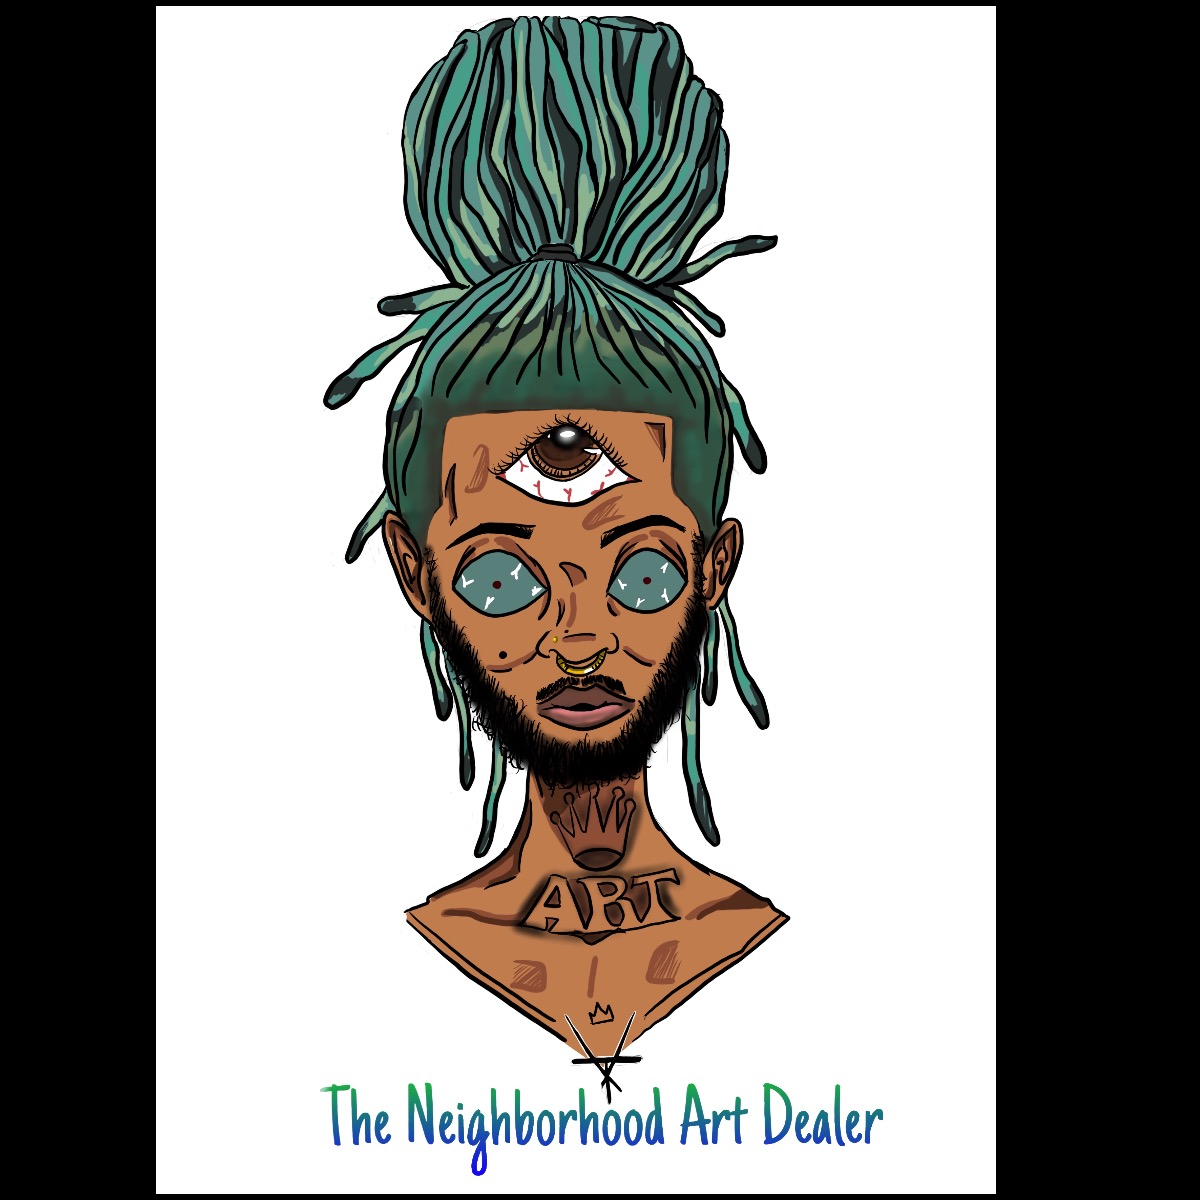 The Neighborhood Art Dealer